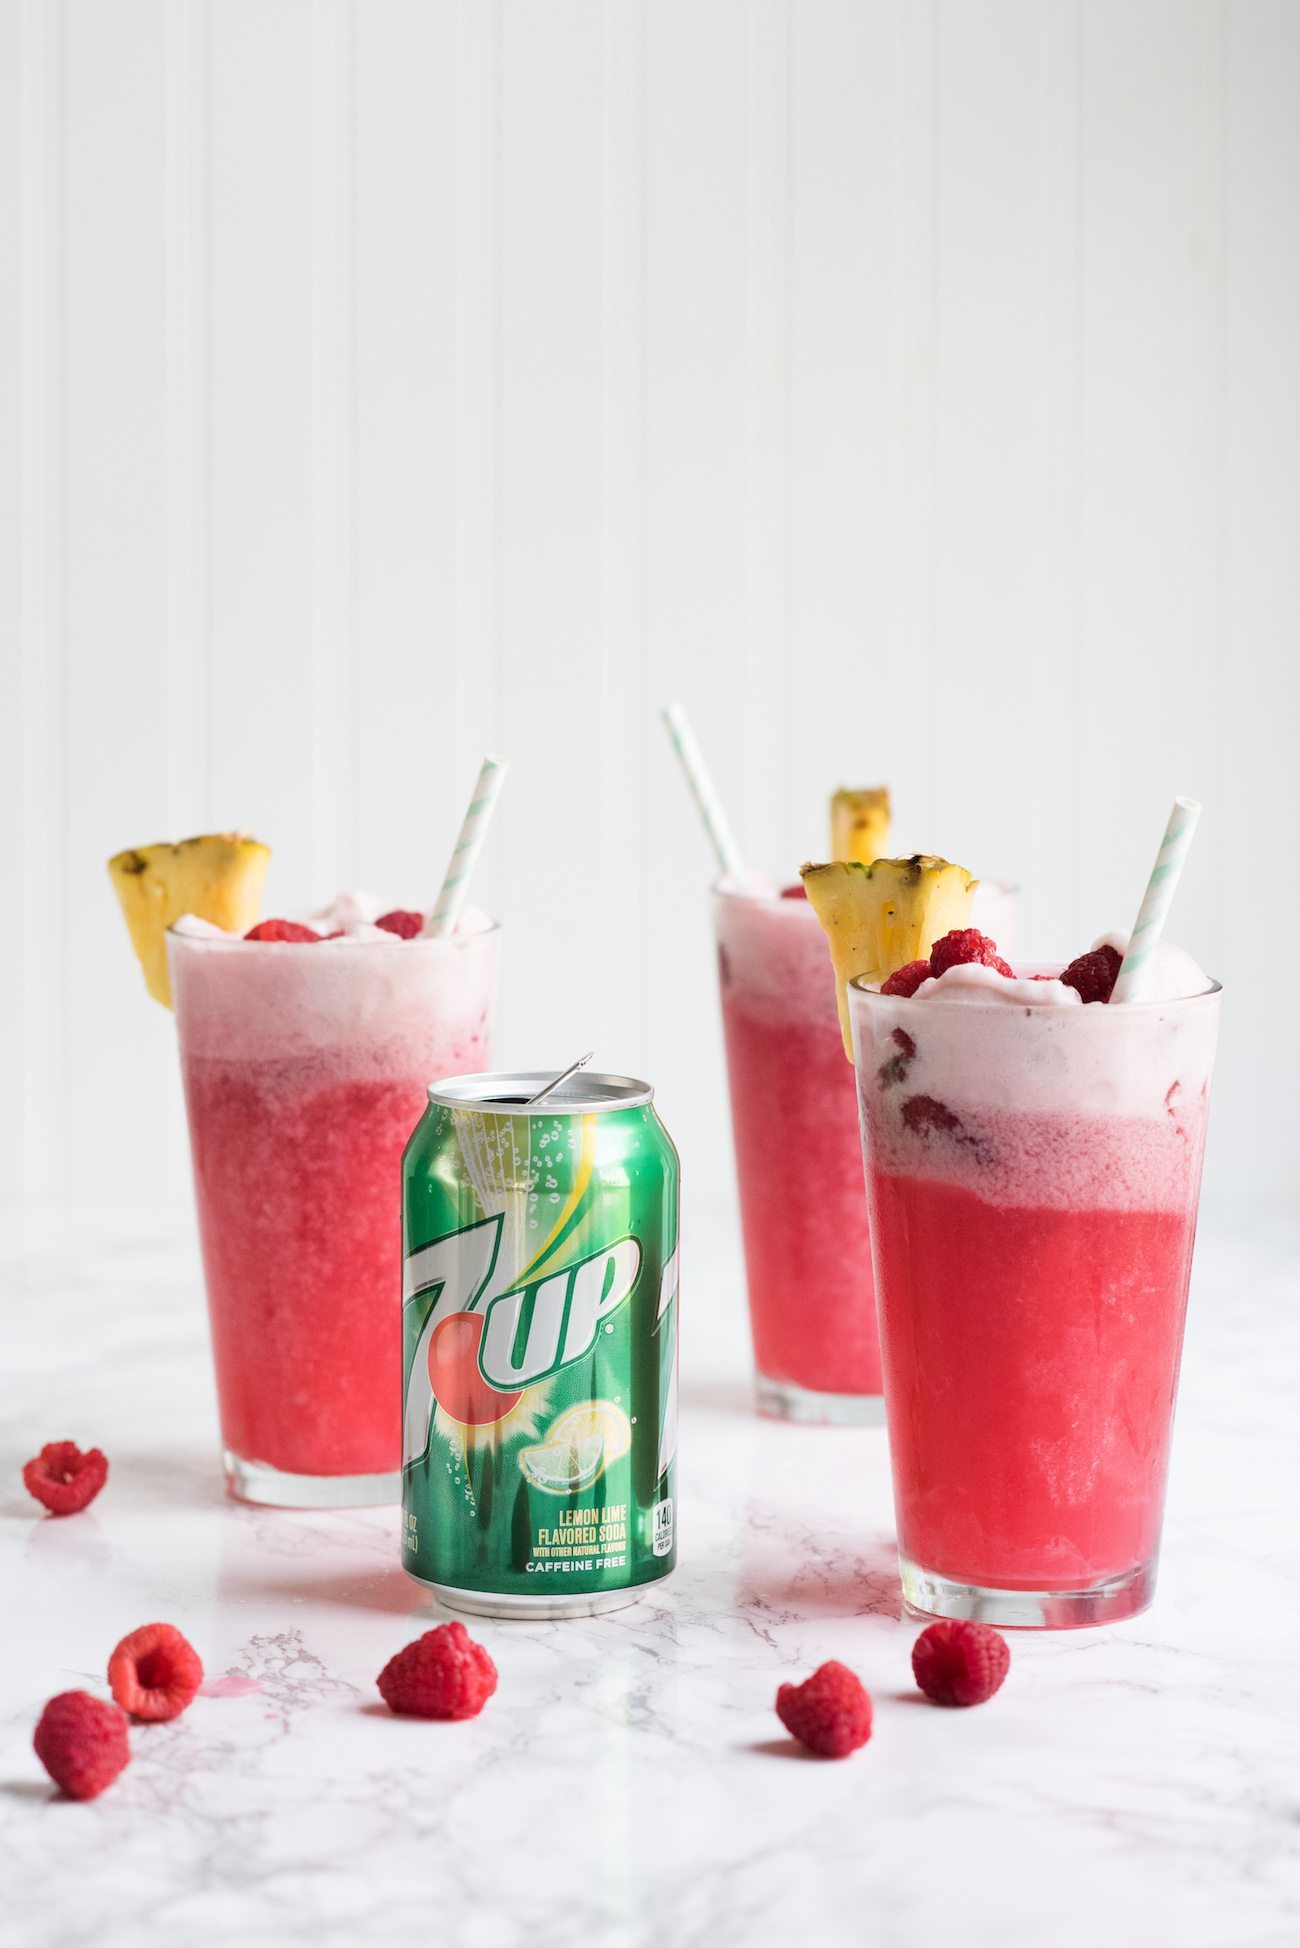 Raspberry Party Punch Sherbet Floats | Unique party ideas, entertaining tips, party recipes, cocktail recipes and more from @cydconverse